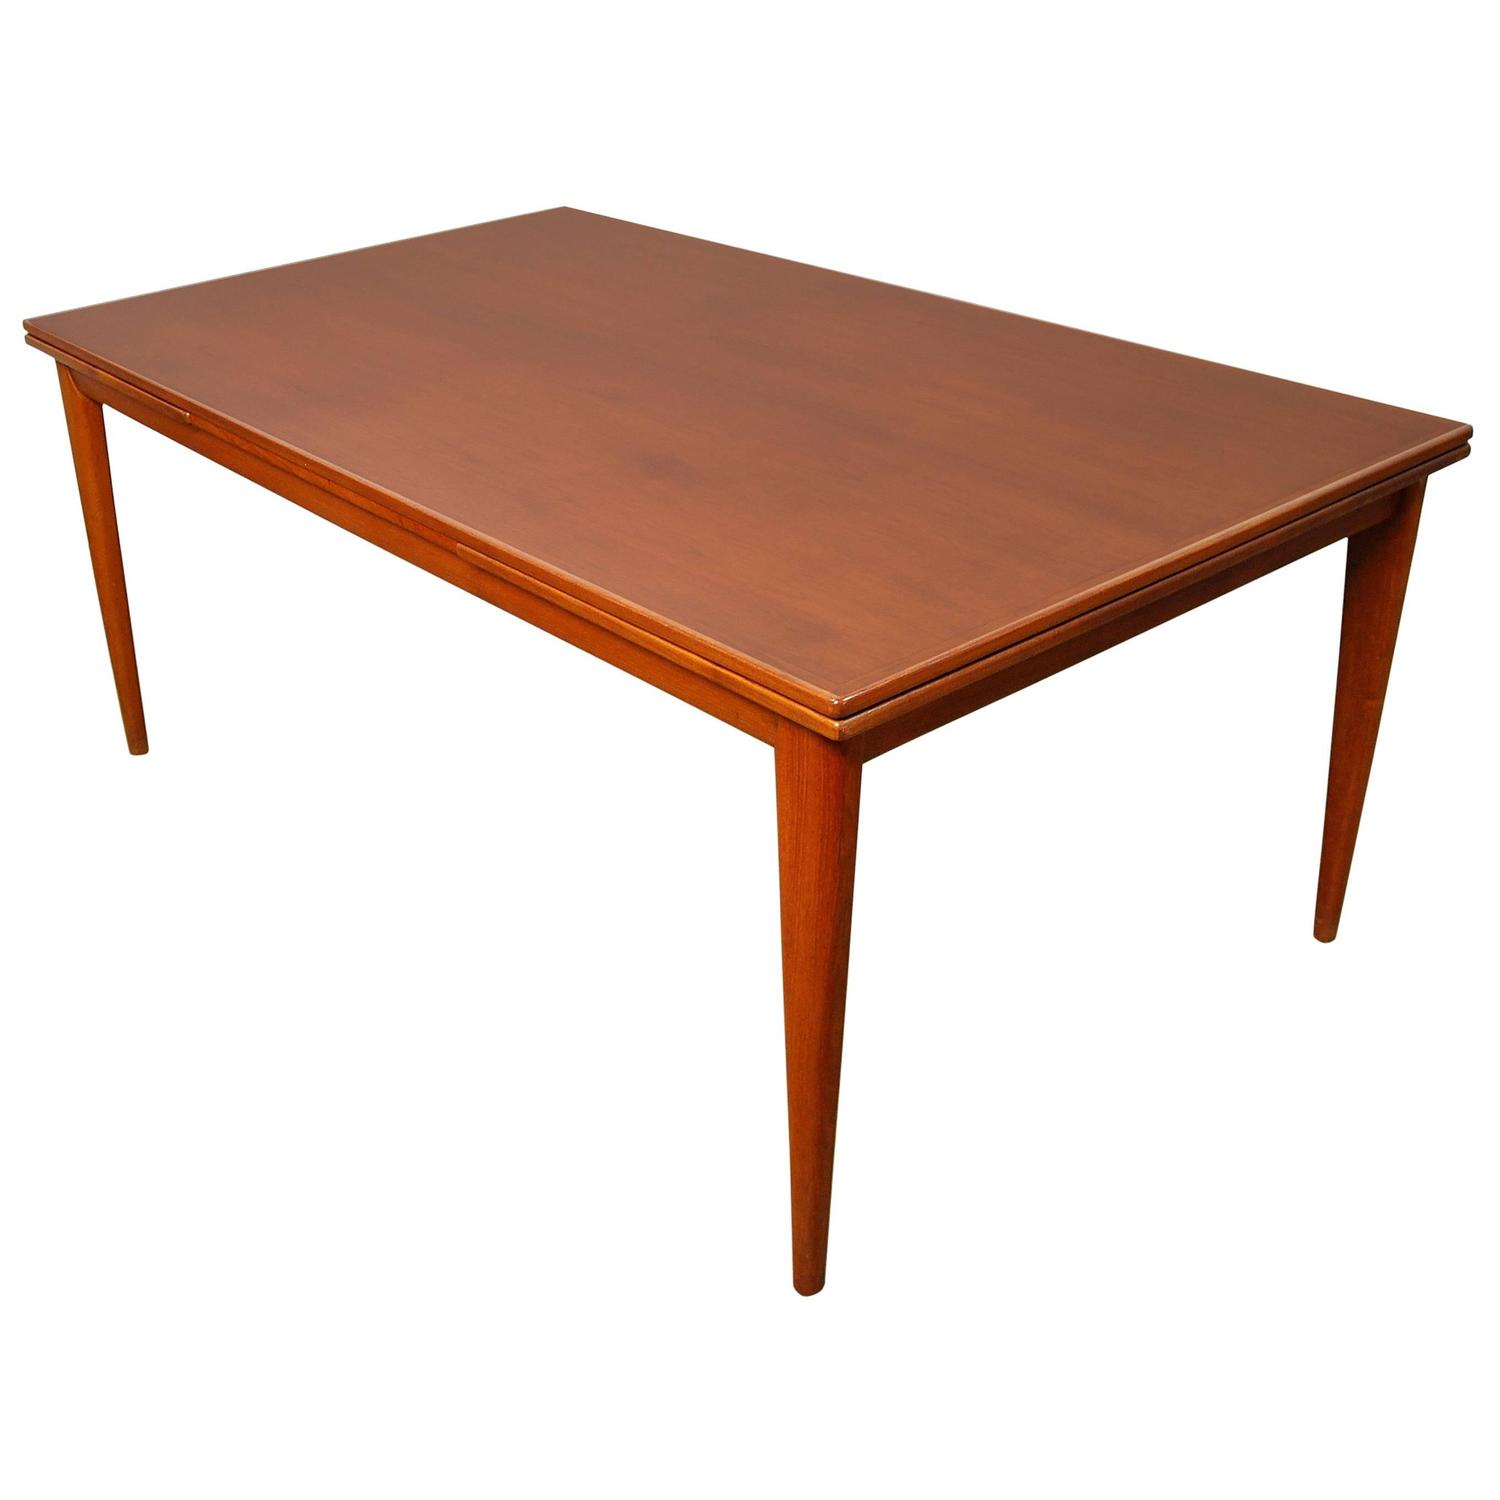 Large Niels Moller Teak Expandable Dining Table Model 12  : 4603843z from www.1stdibs.com size 1500 x 1500 jpeg 54kB